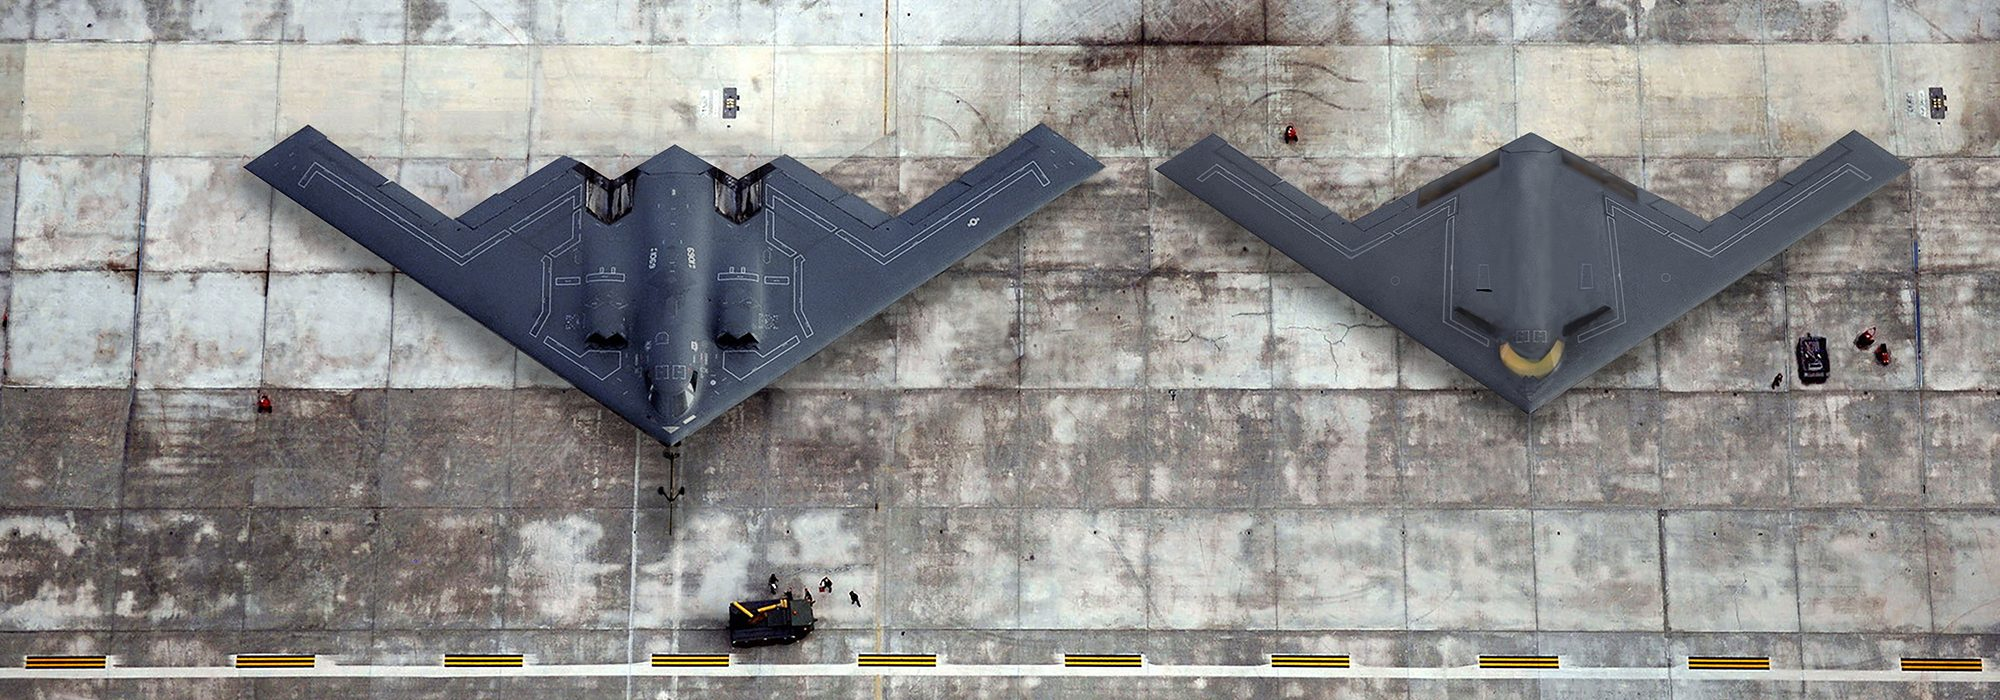 B-21_B2_overhead_illustration.jpg